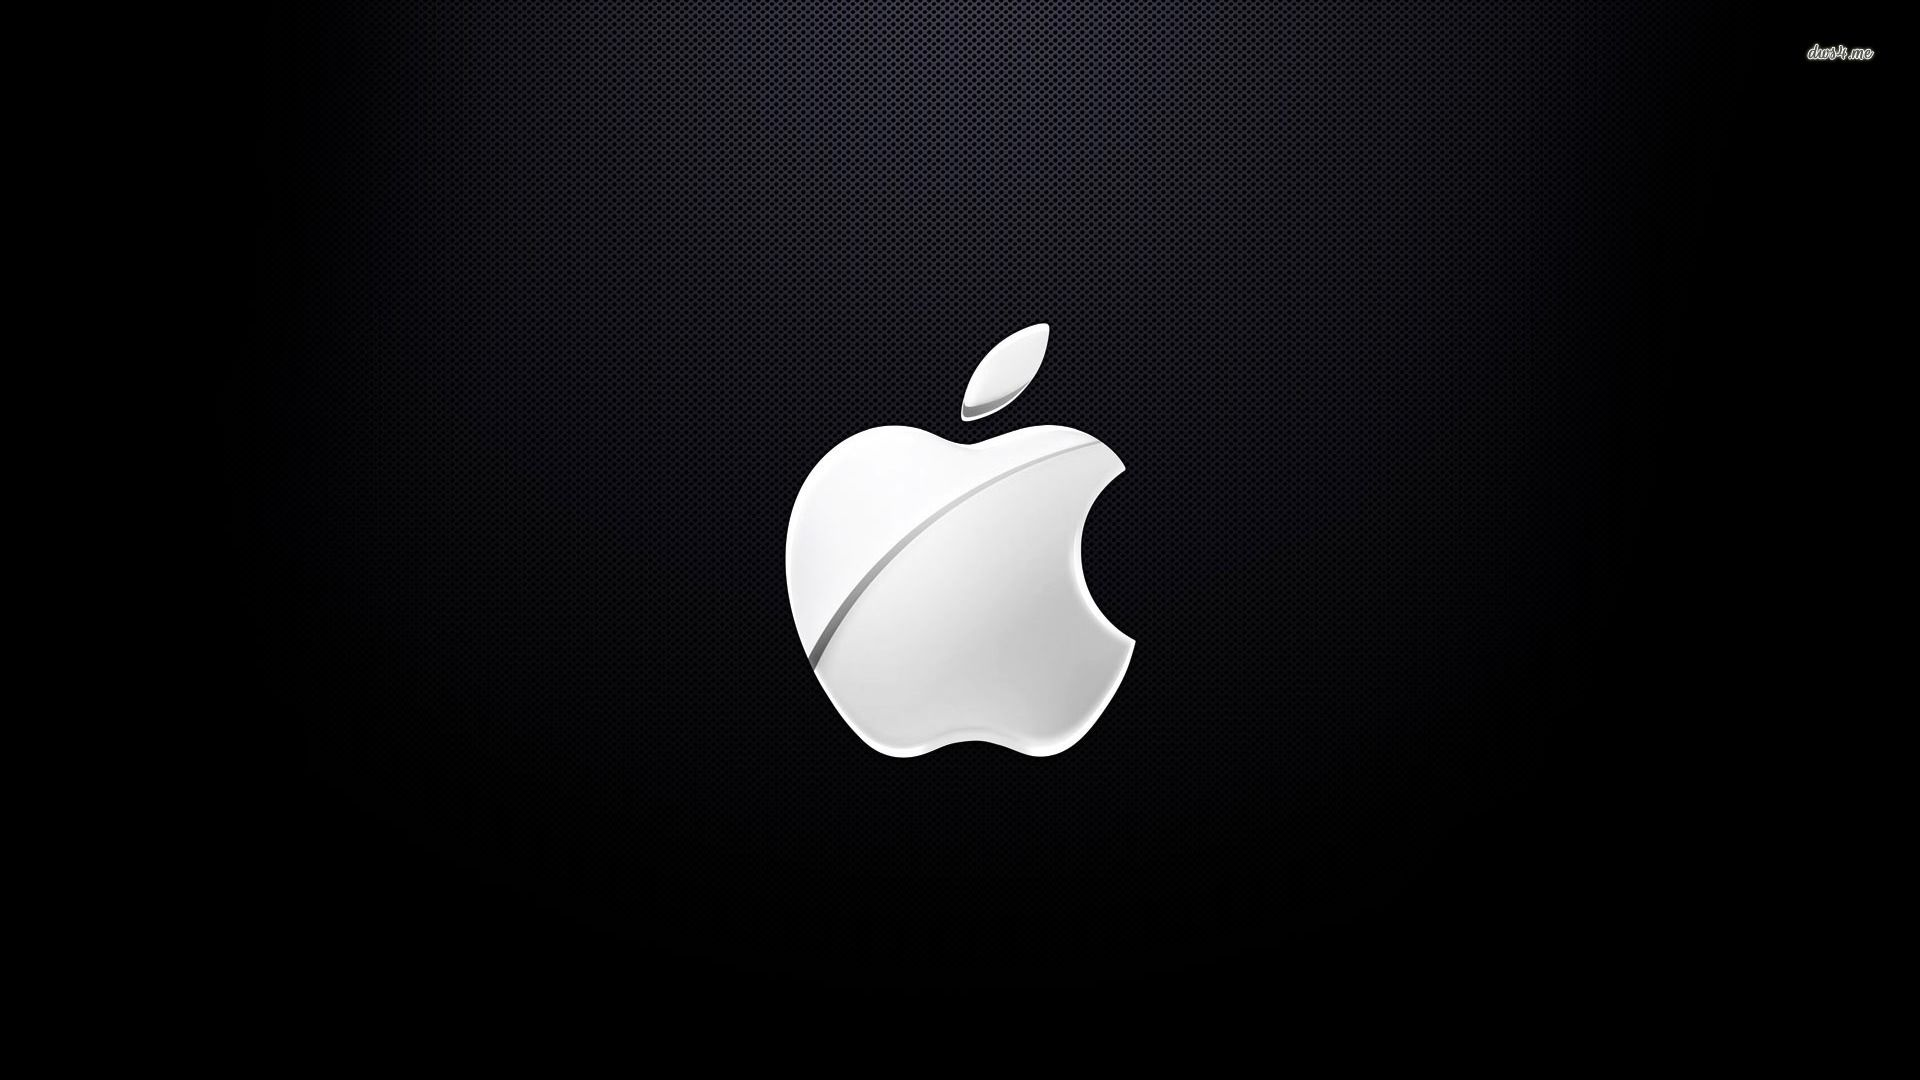 Apple S Logo Wallpapers Top Free Apple S Logo Backgrounds